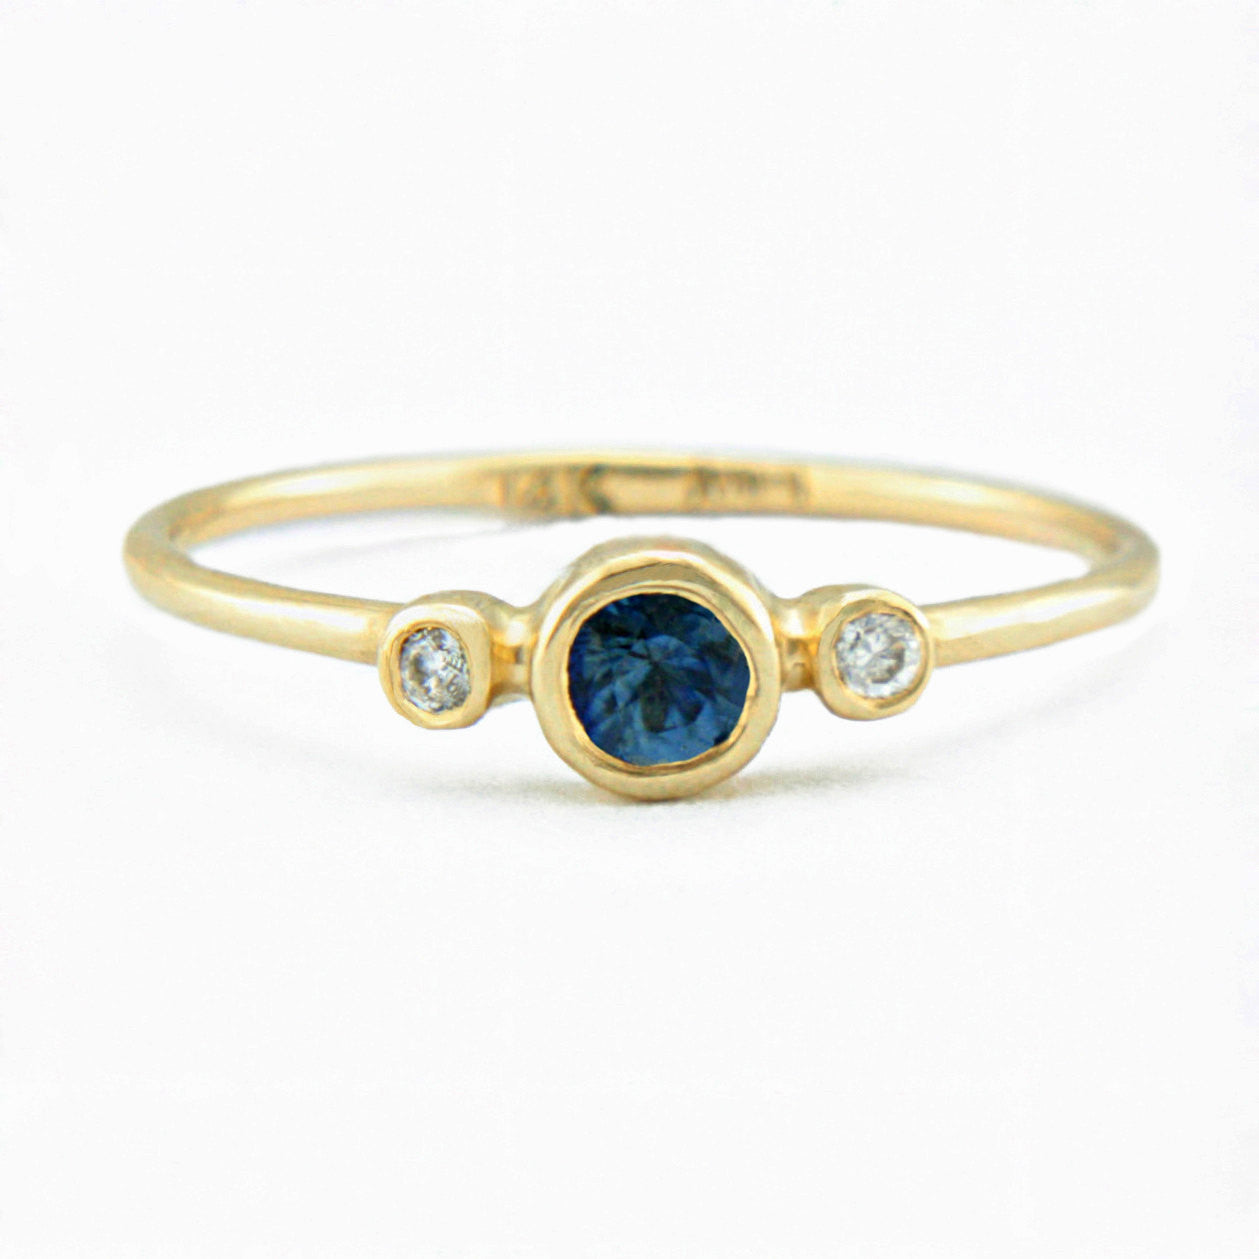 Blue Sapphire and Diamond Ring 14k Gold - Manari.eu